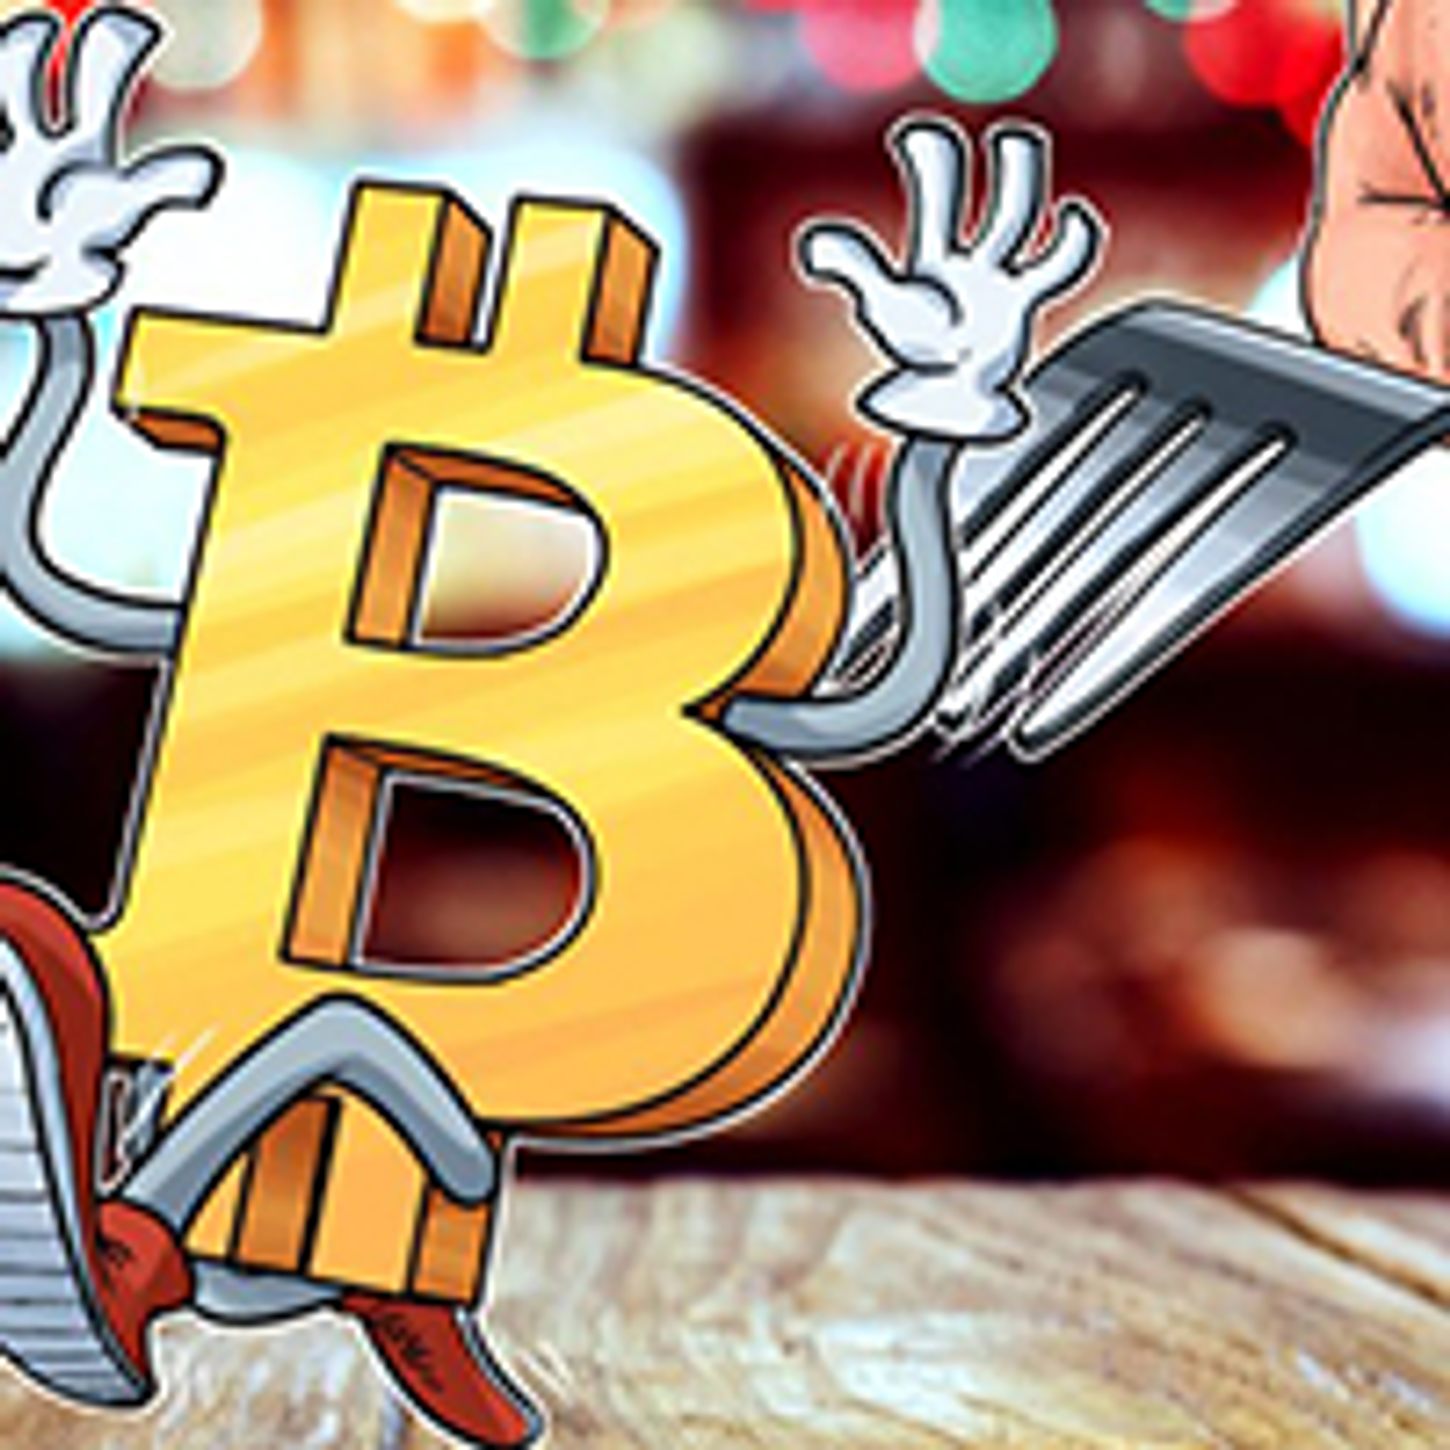 Stay Informed About the Latest Hard Fork News | Cointelegraph